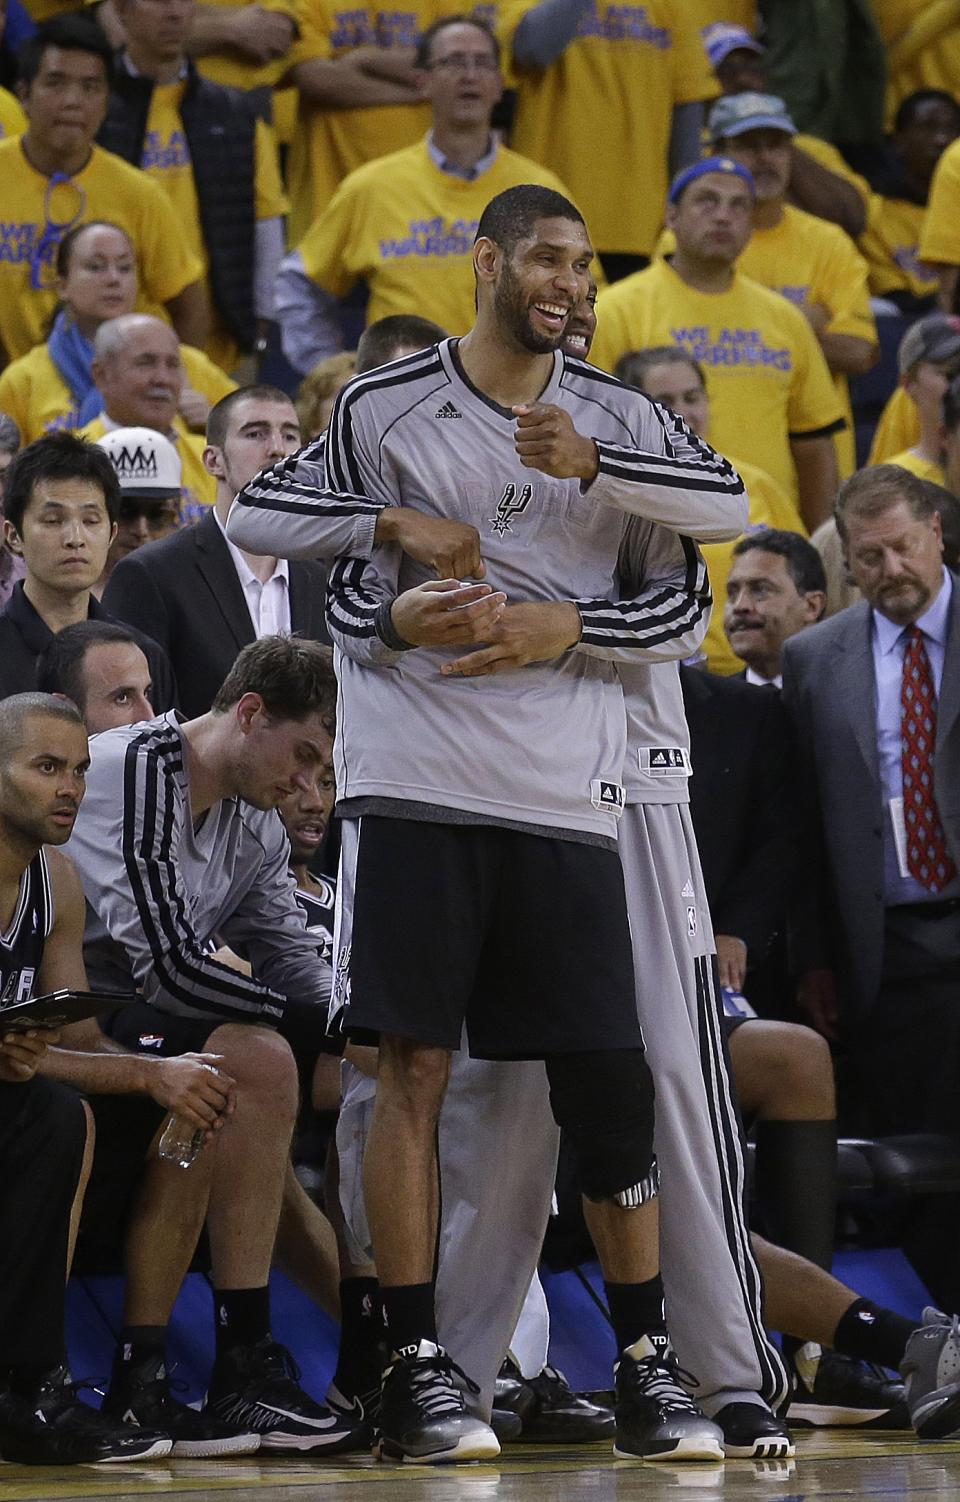 San Antonio Spurs power forward Tim Duncan, foreground, and shooting guard Tracy McGrady celebrate during the fourth quarter of Game 6 of a Western Conference semifinal NBA basketball playoff series against the Golden State Warriors in Oakland, Calif., Thursday, May 16, 2013. (AP Photo/Jeff Chiu)